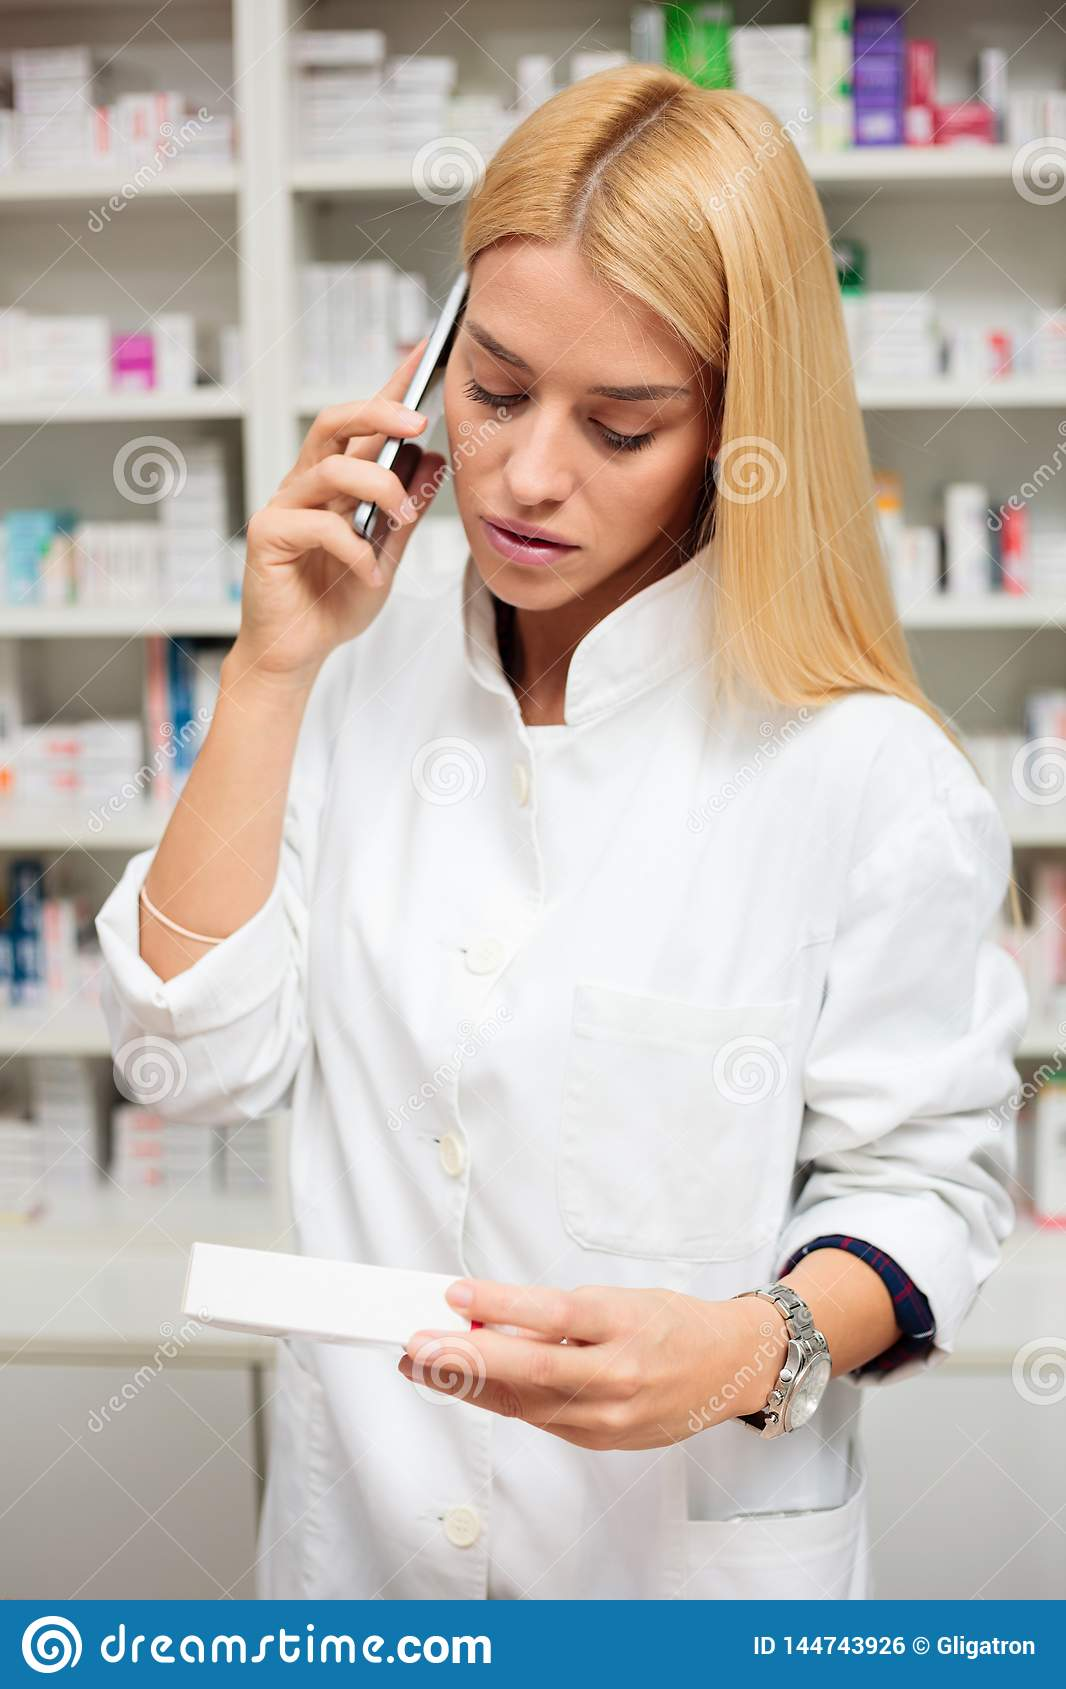 Serious young blond haired female pharmacist talking on the phone, holding a box of medications in other hand. Shelf with